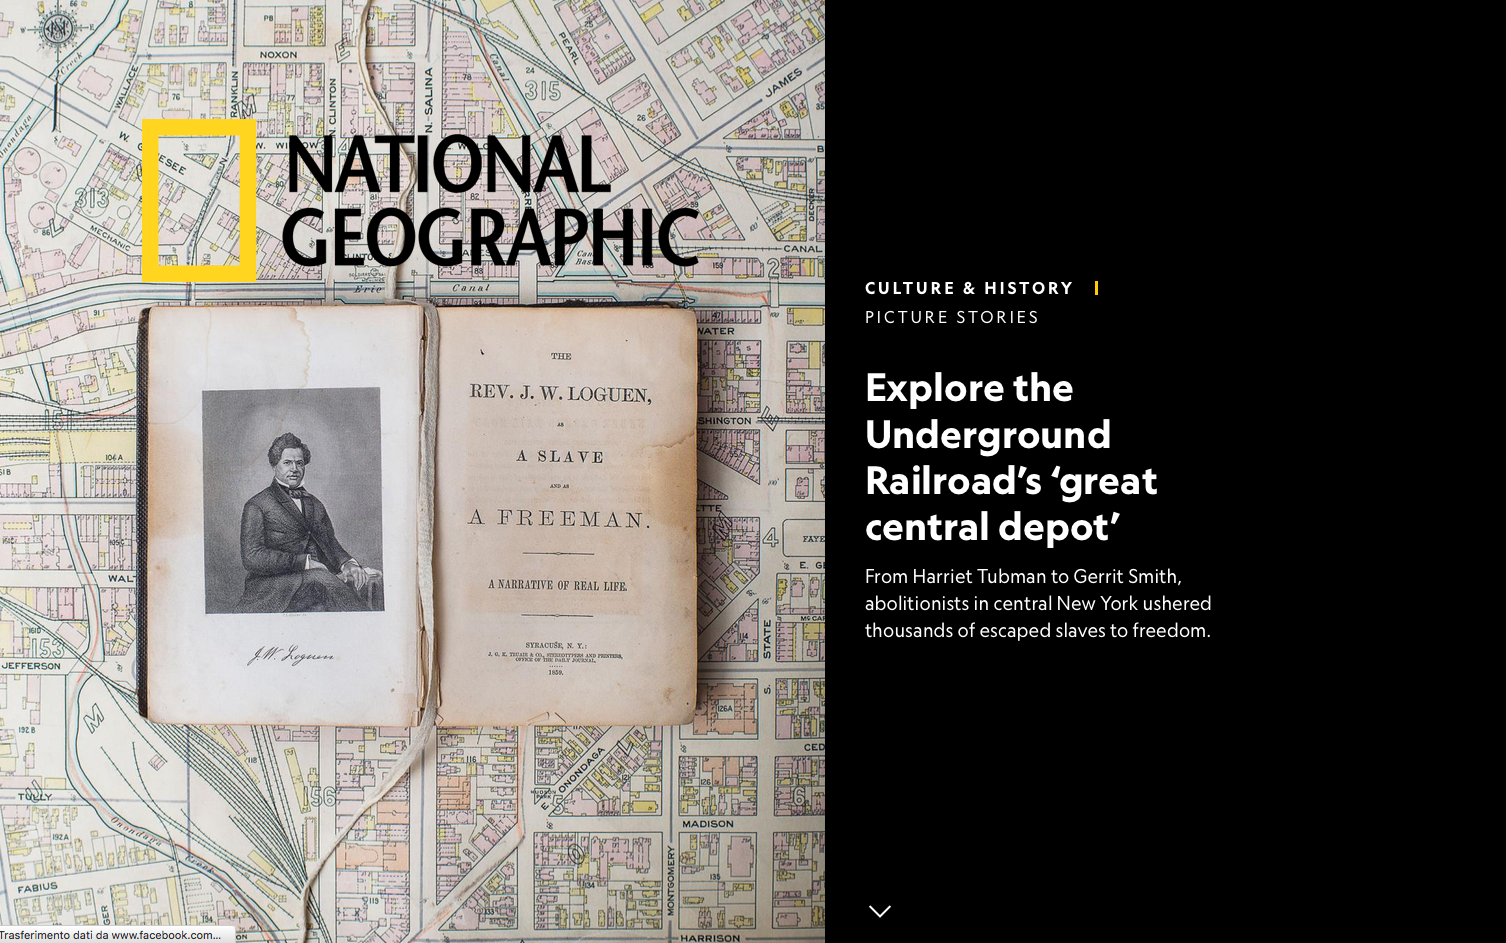 National Geographic - Explore the Underground Railroad's 'great central depot - Text by Kim M. Williamson